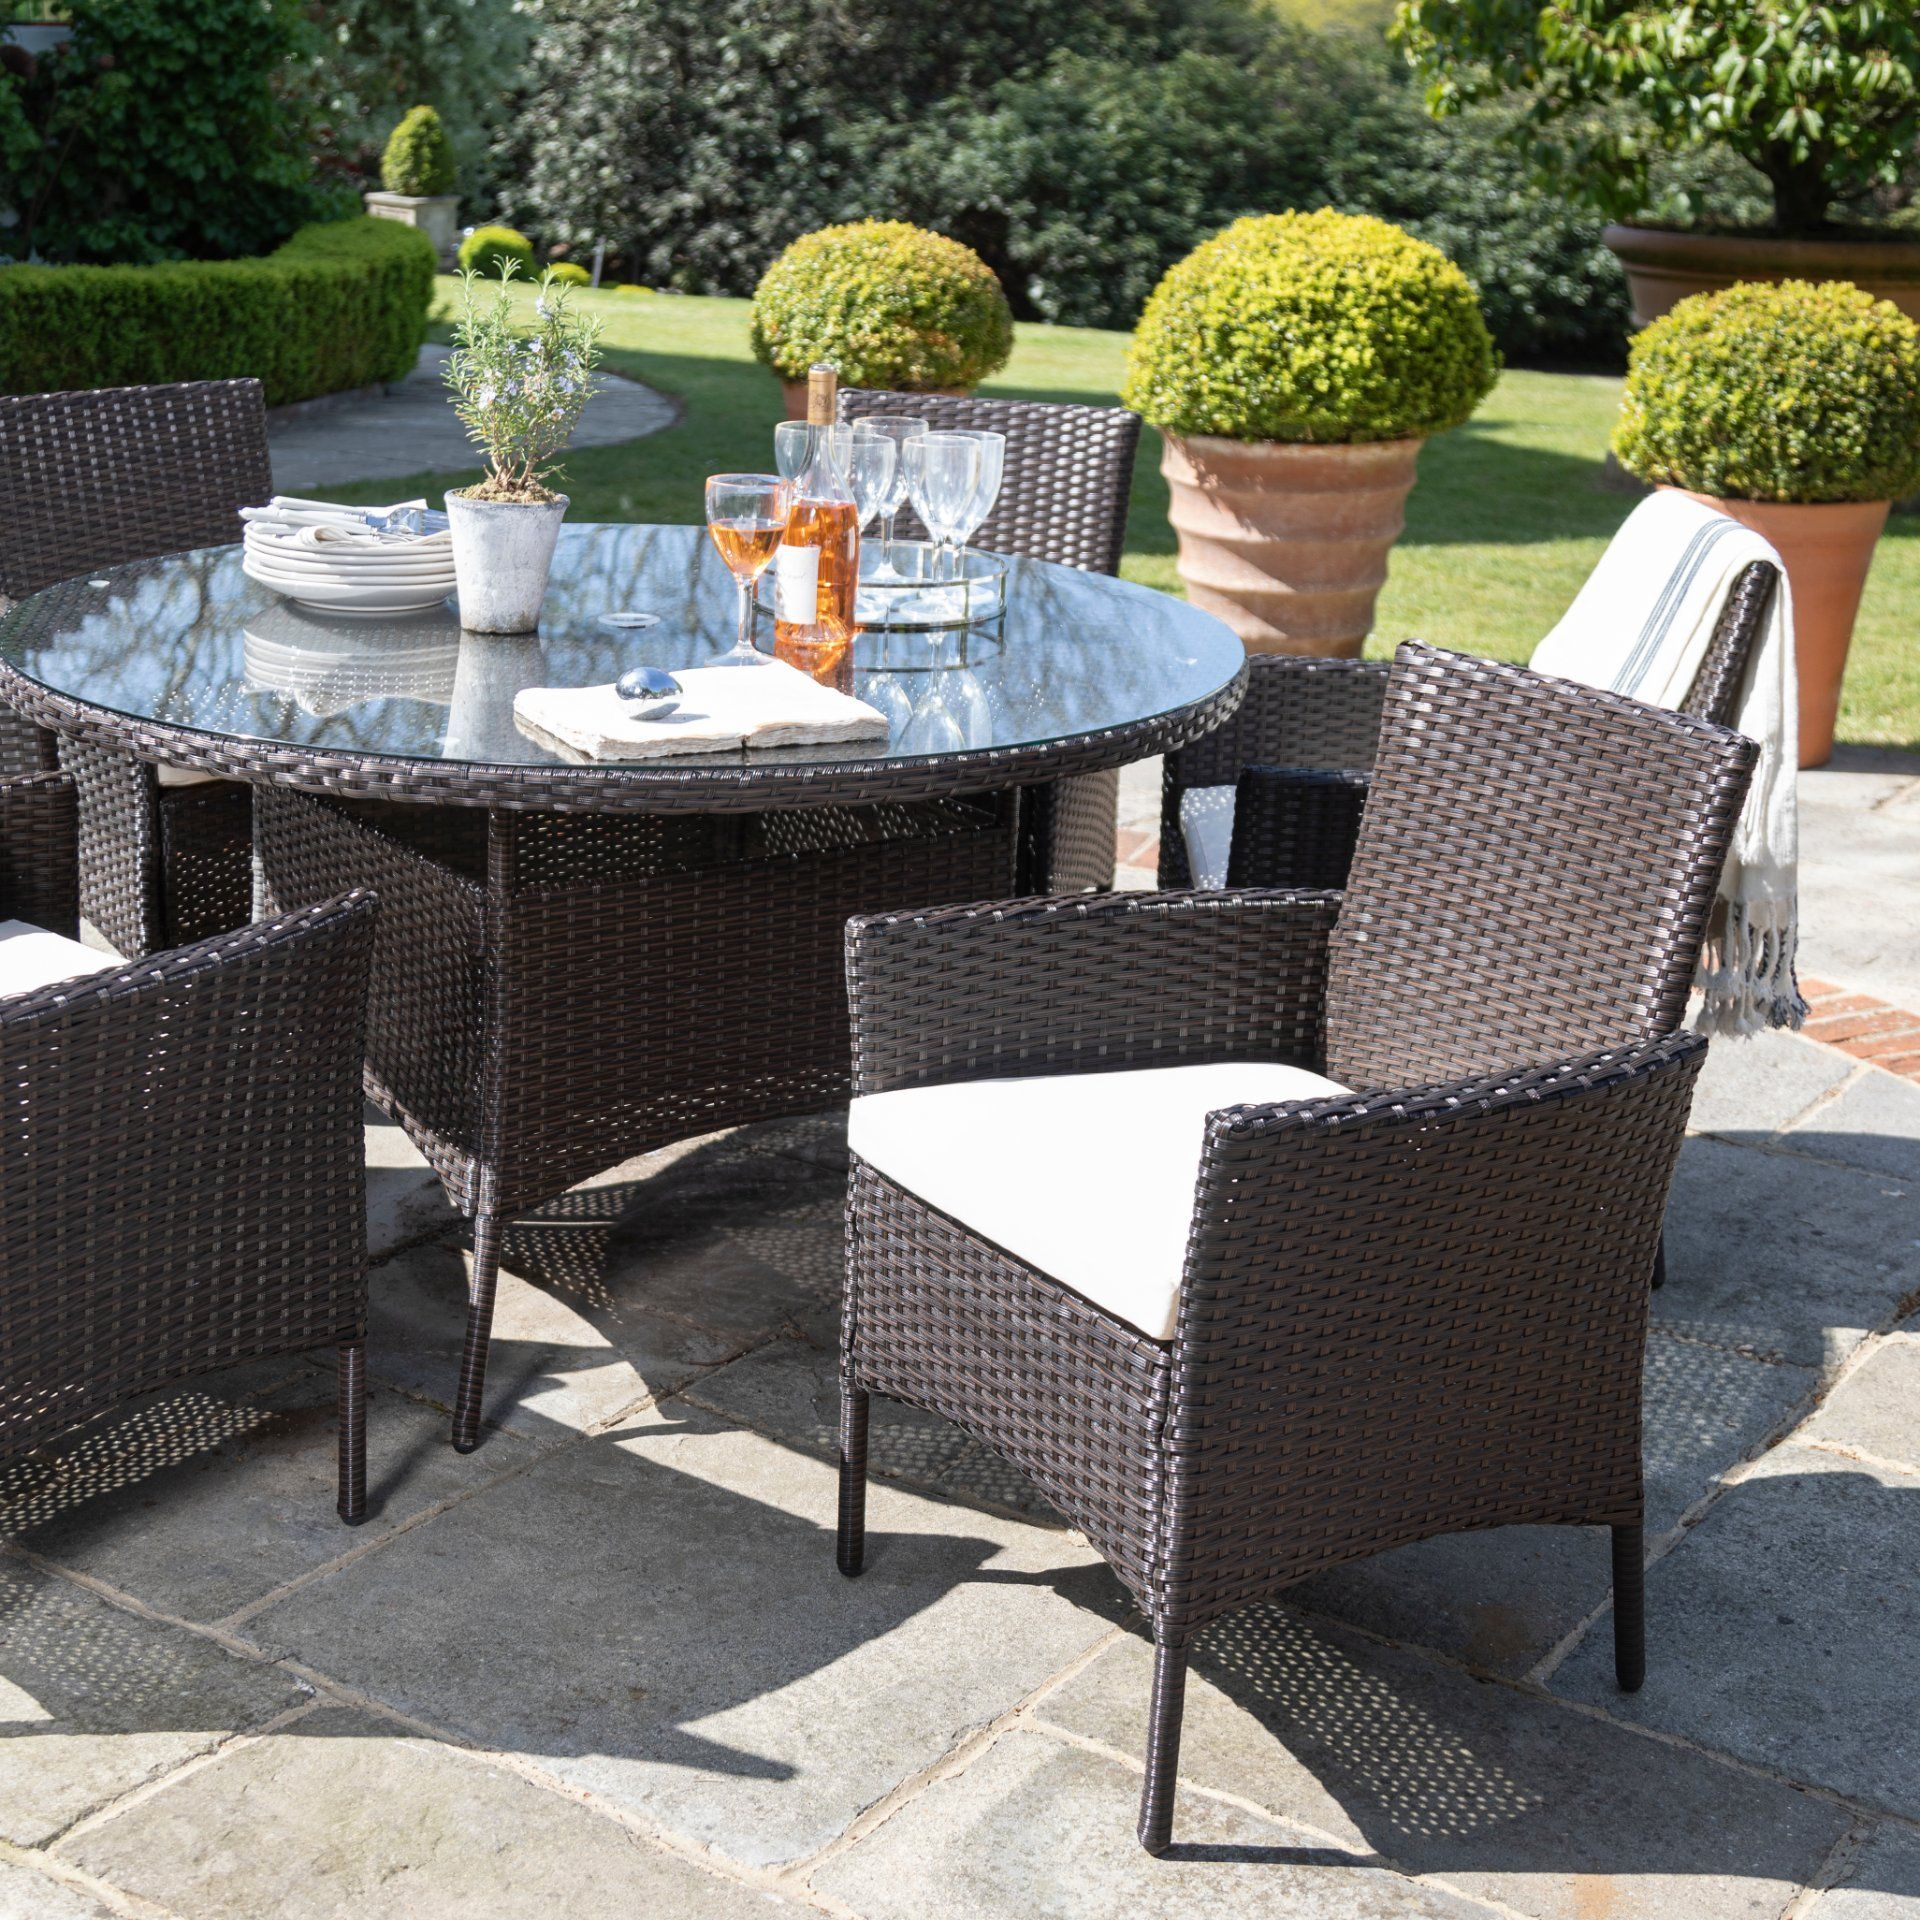 6 Seater Rattan Round Dining Table Set In Brown Garden Furniture Out Laura James